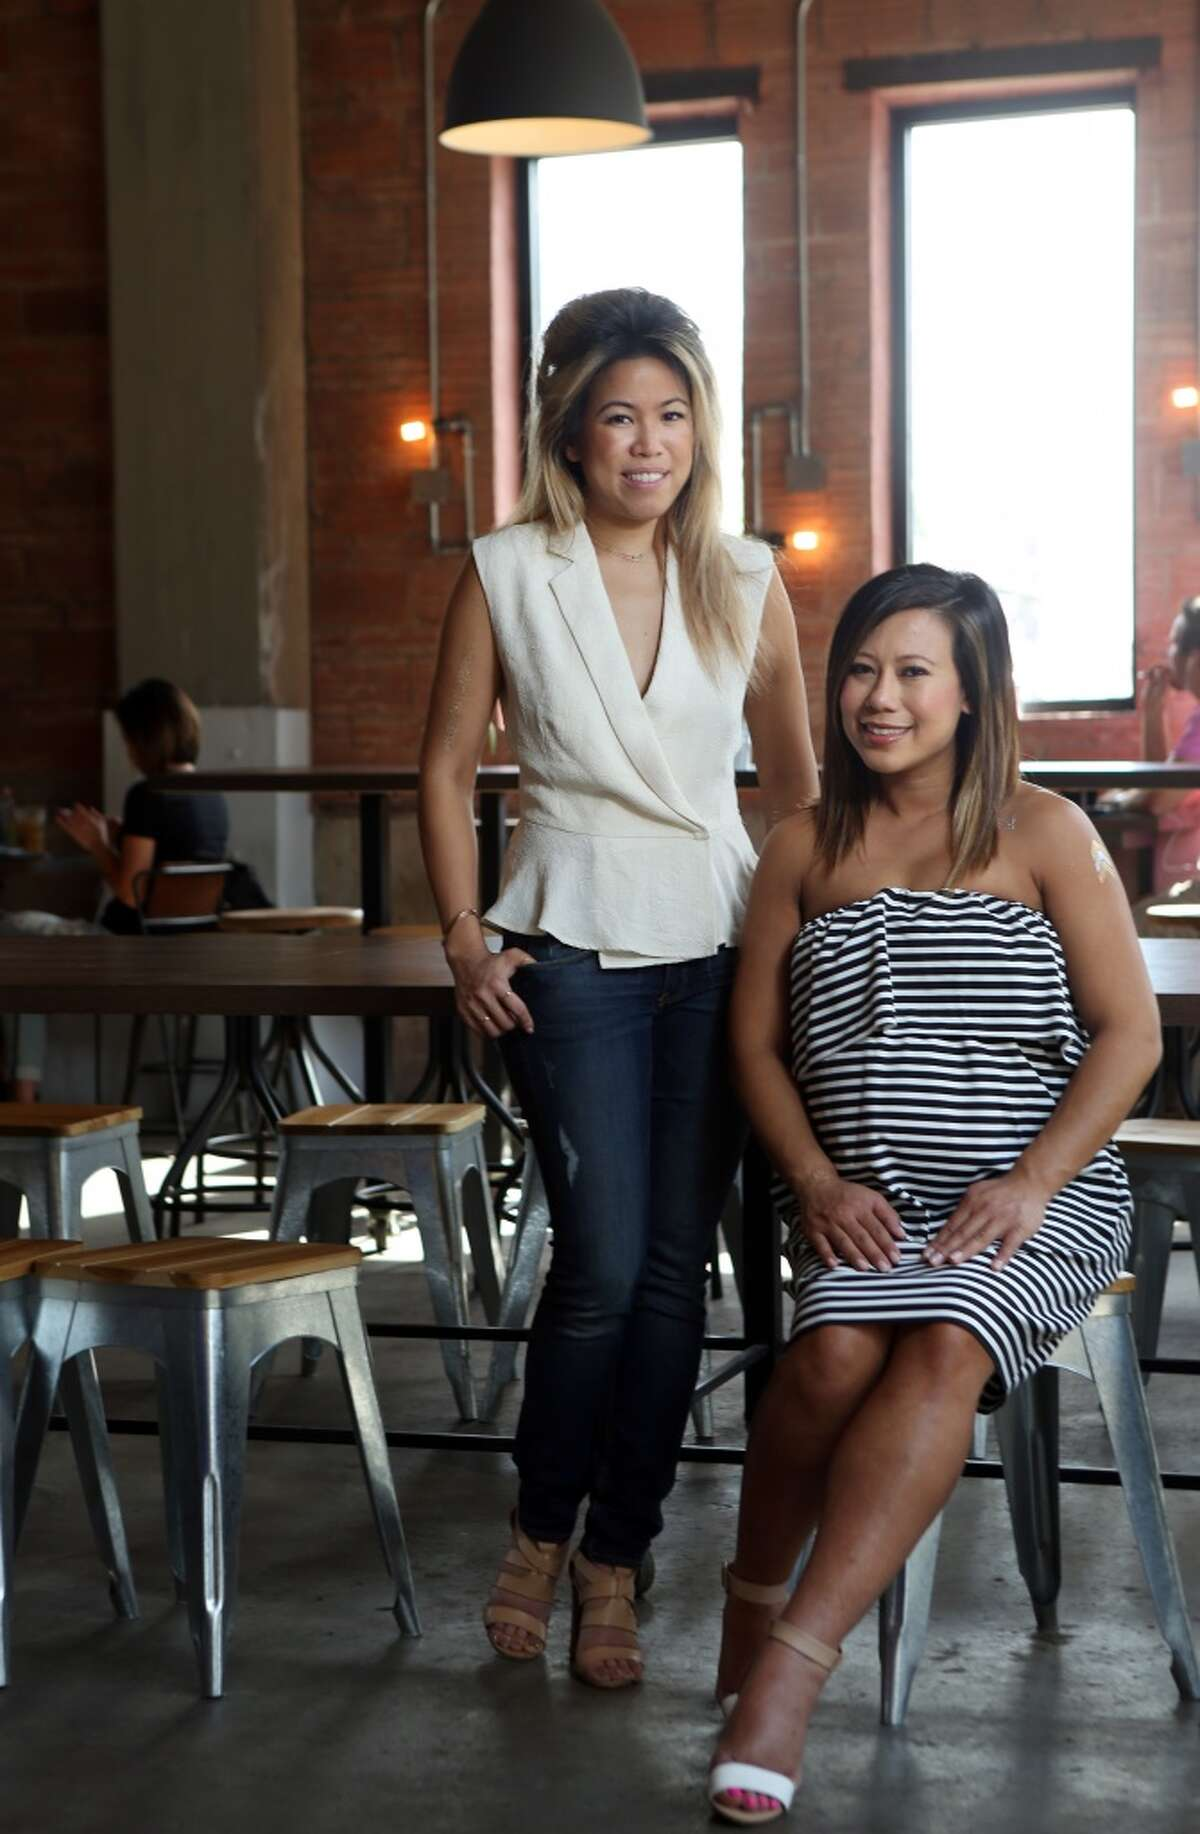 Tout Suite, a new bakery and cafe in downtown Houston, is owned by partners Anne Le, left, and Sandy Tran. Le will participate in Home Sweet Home, a dessert festival and competition on April 12 at St. Arnold Brewing Company. ( Mayra Beltran / Houston Chronicle )